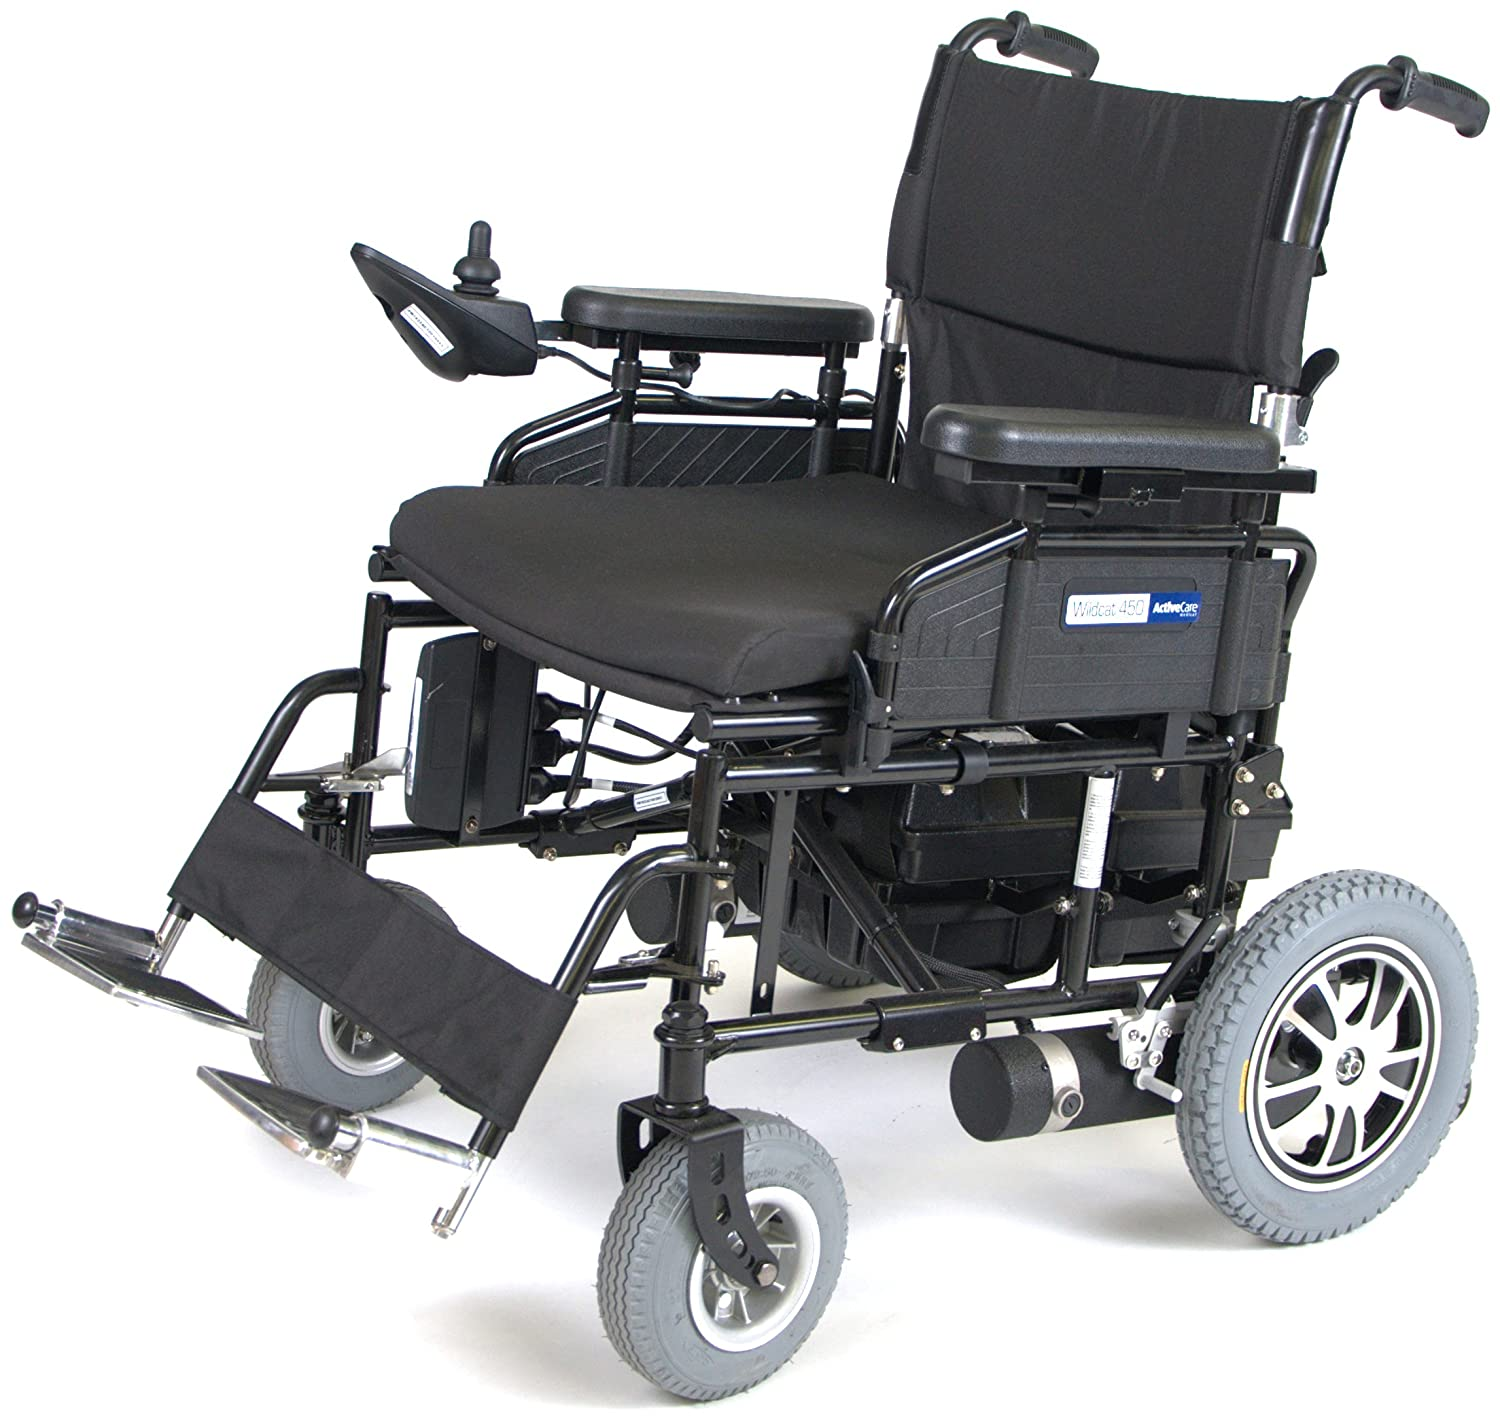 Amazon Wildcat 450 Heavy Duty Folding Power Wheelchair